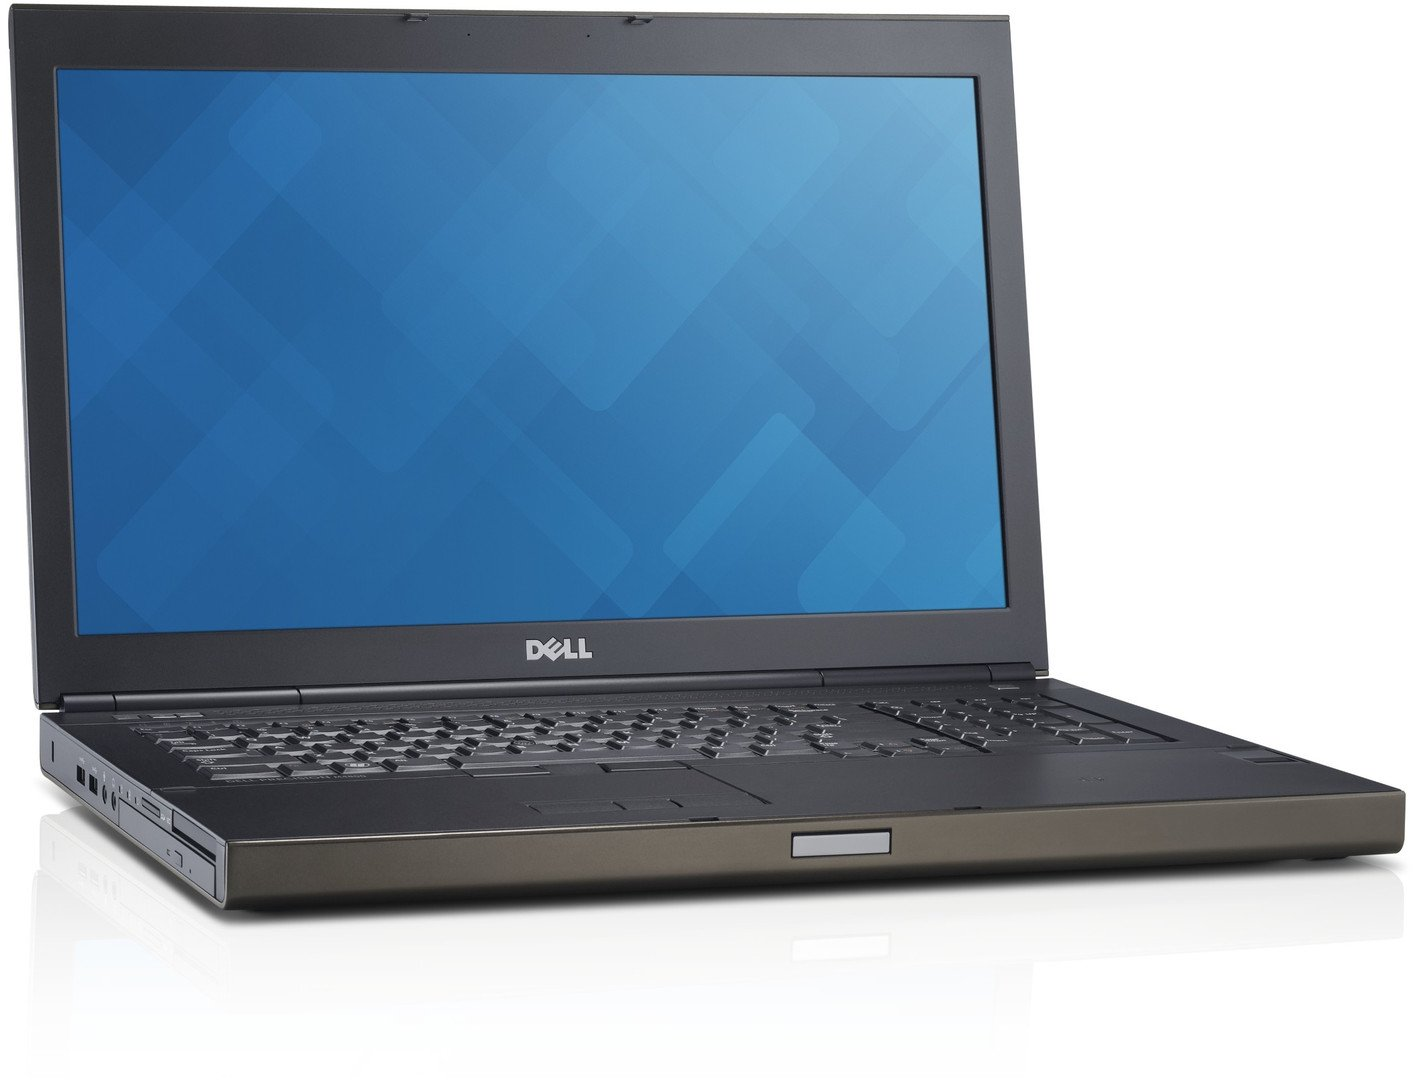 DELL Precision M6800 - Ordenador portátil (i7-4800MQ, DVD±RW, Touchpad, Windows 7 Professional, 64-bit, Intel Core i7-4xxx): Amazon.es: Informática